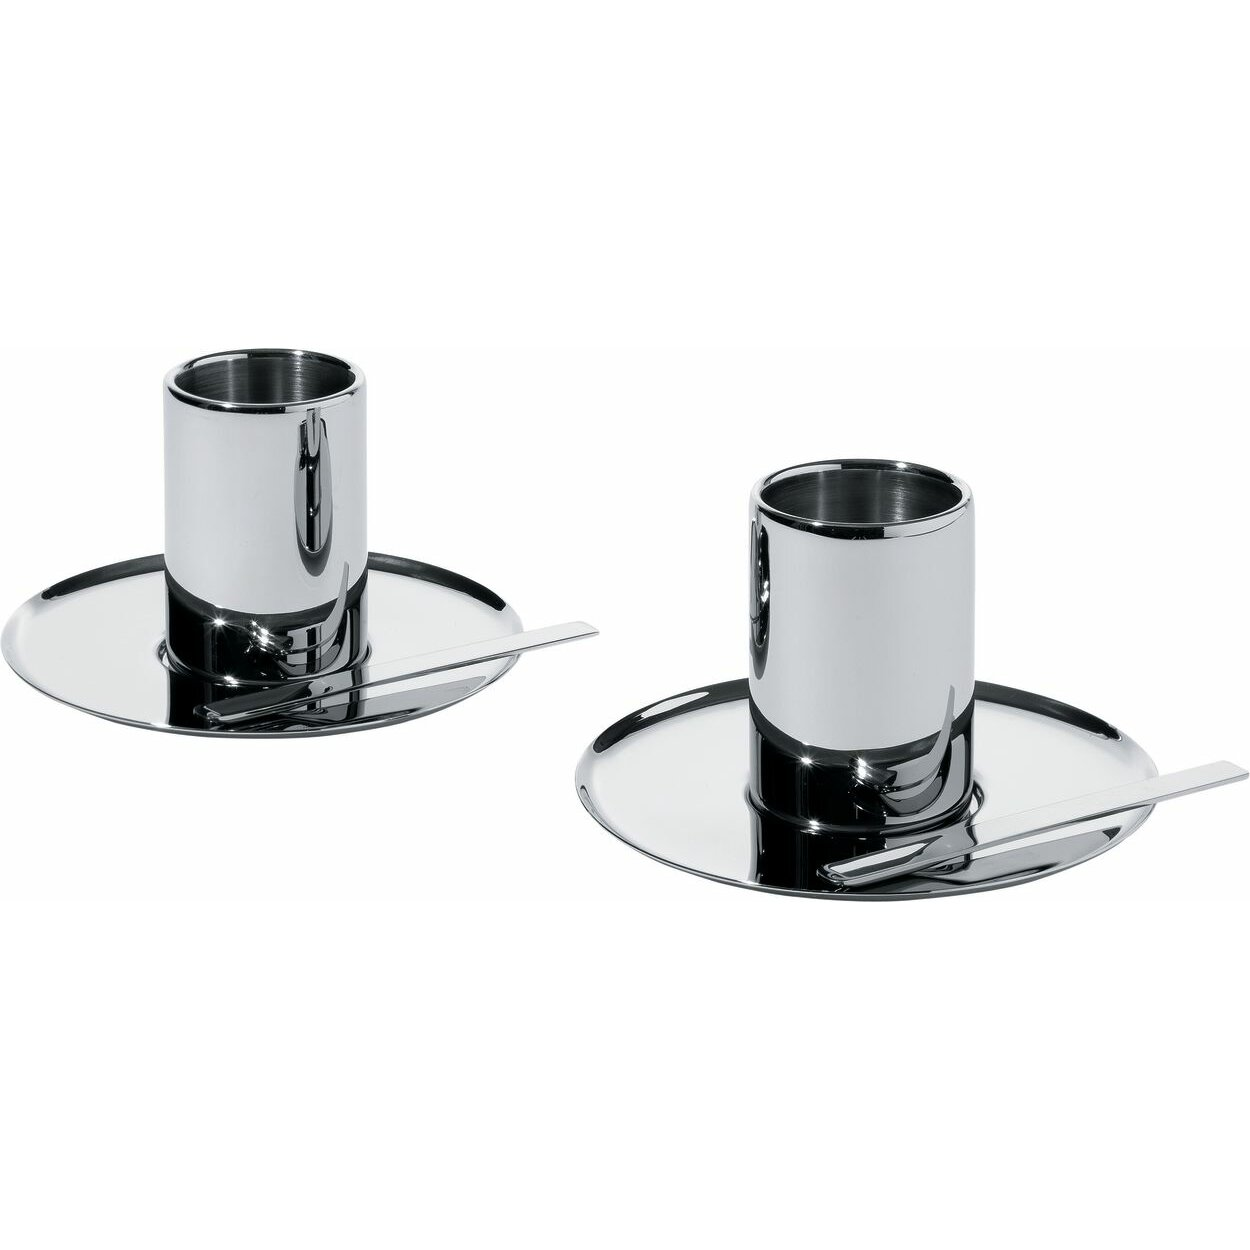 Nouvel Mocha Cup and Saucer & Reviews   AllModern - Alessi Nouvel Mocha Cup and Saucer